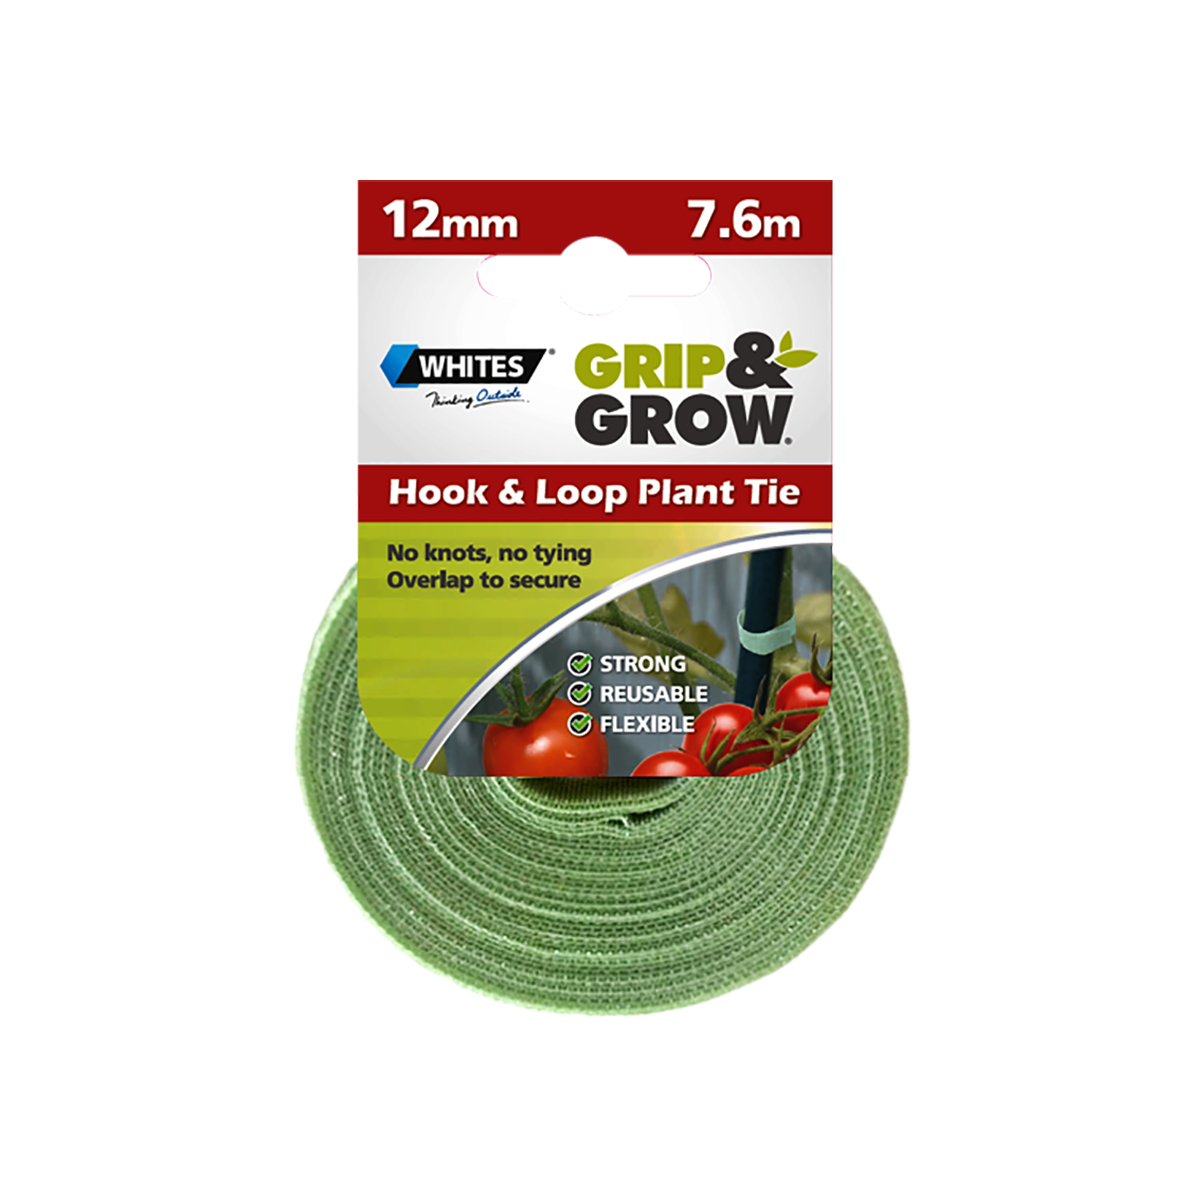 18719 - Grip & Grow Hook & Loop Plant Tie